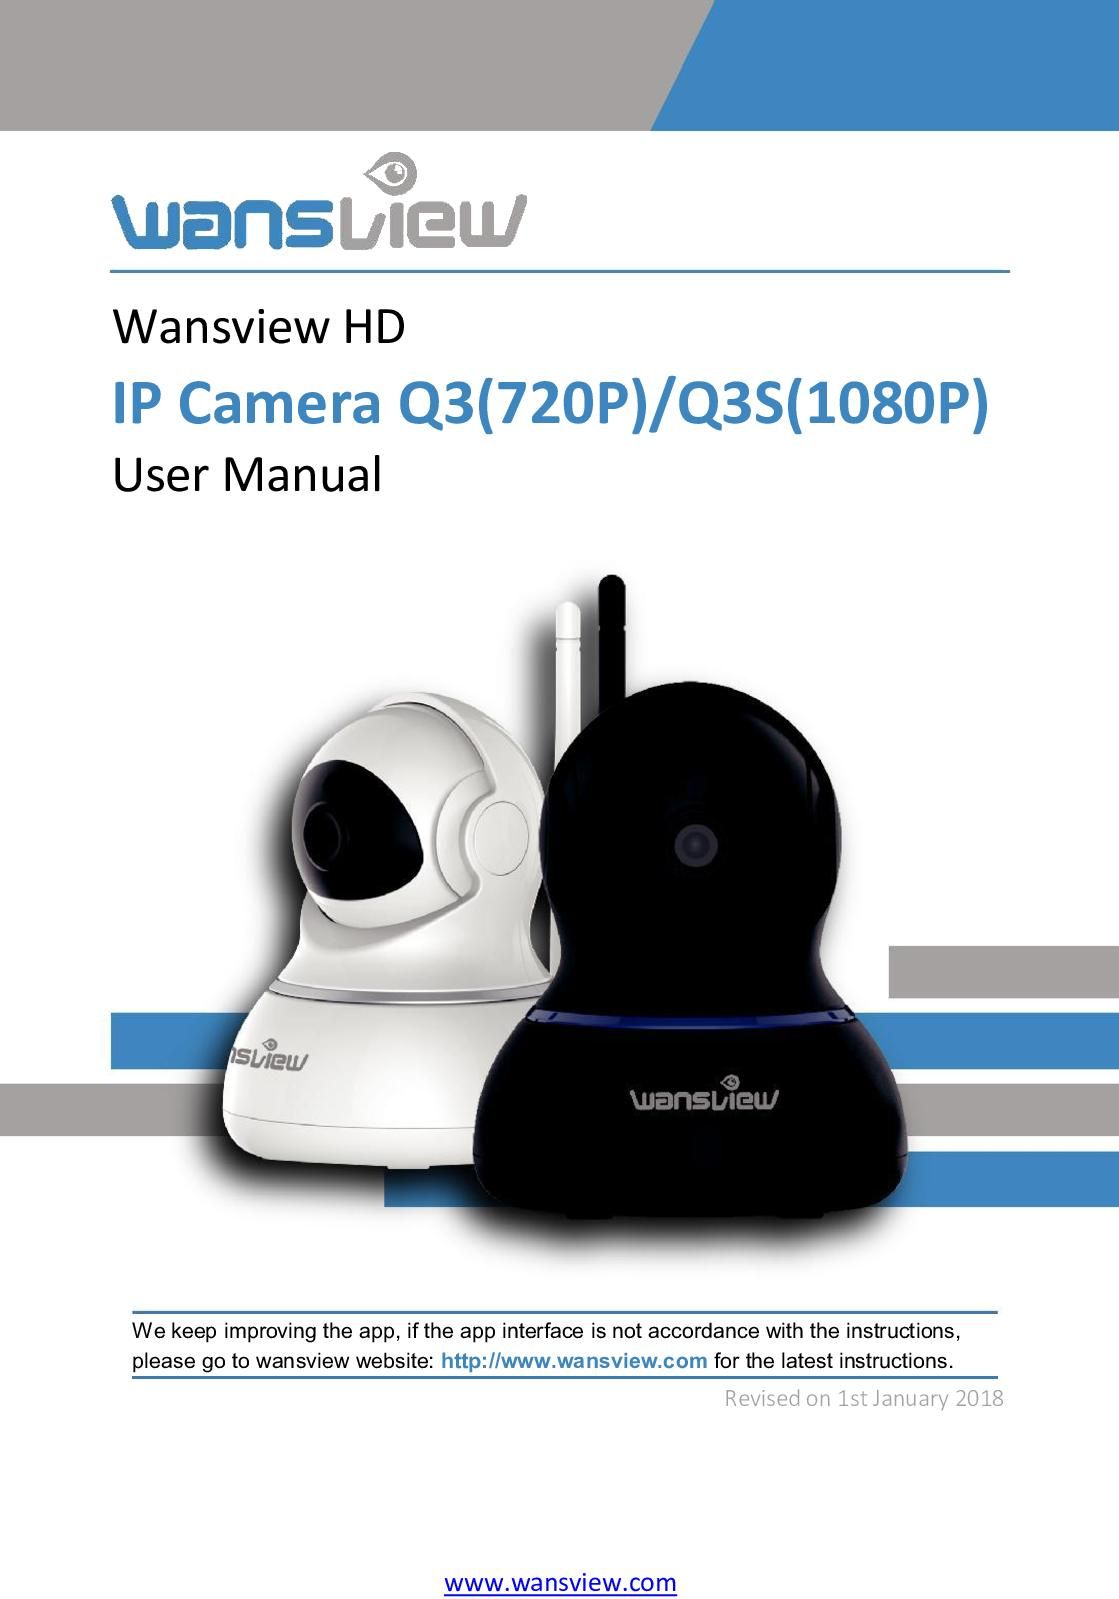 Calaméo - User Manual Of Wansview Indoor Camera Q3&q3s